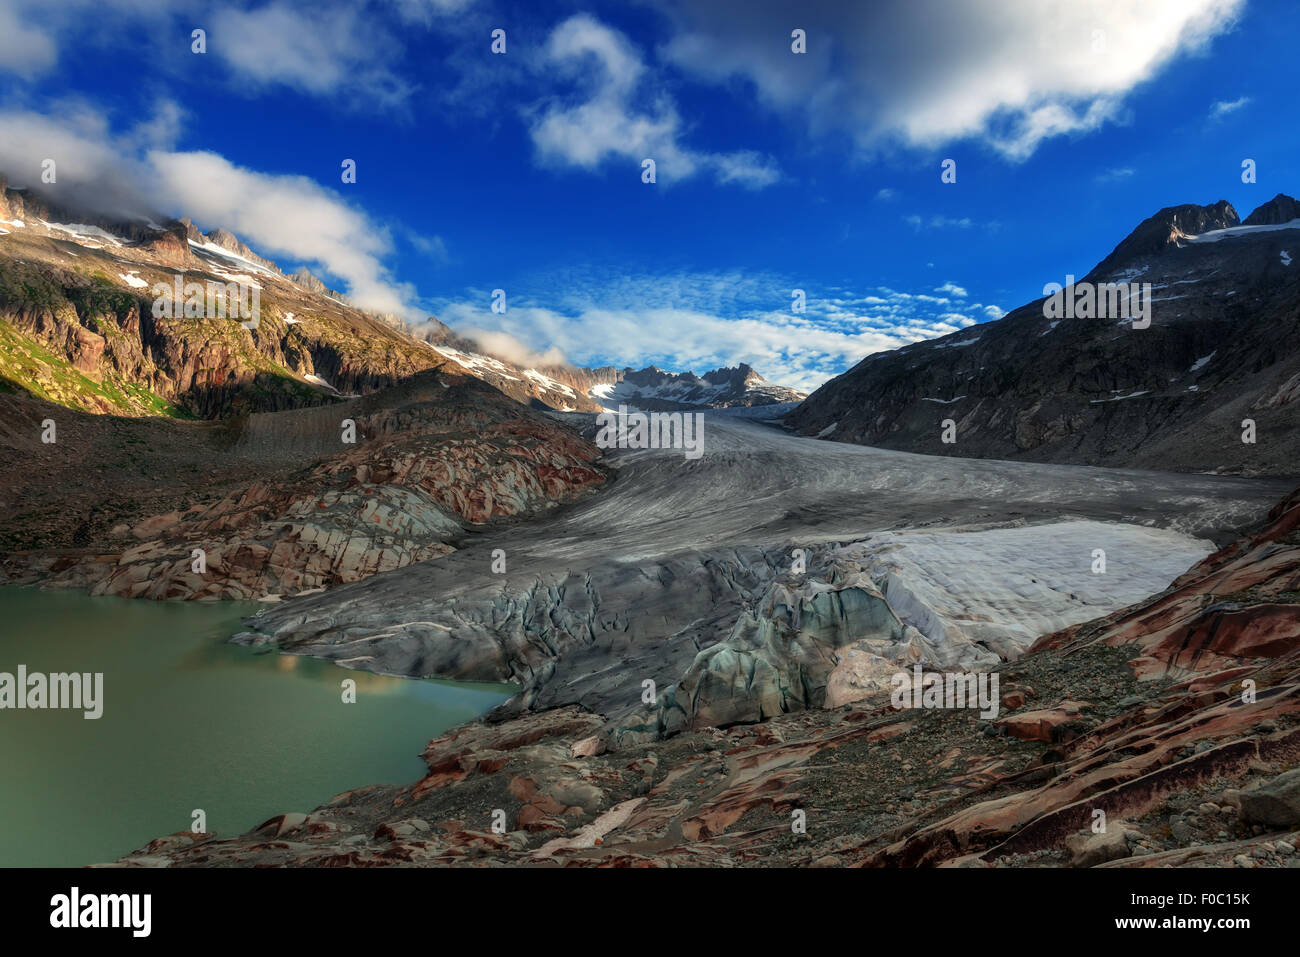 Rhone glacier in Swiss Alps in summer day. Switzerland, Europe. - Stock Image